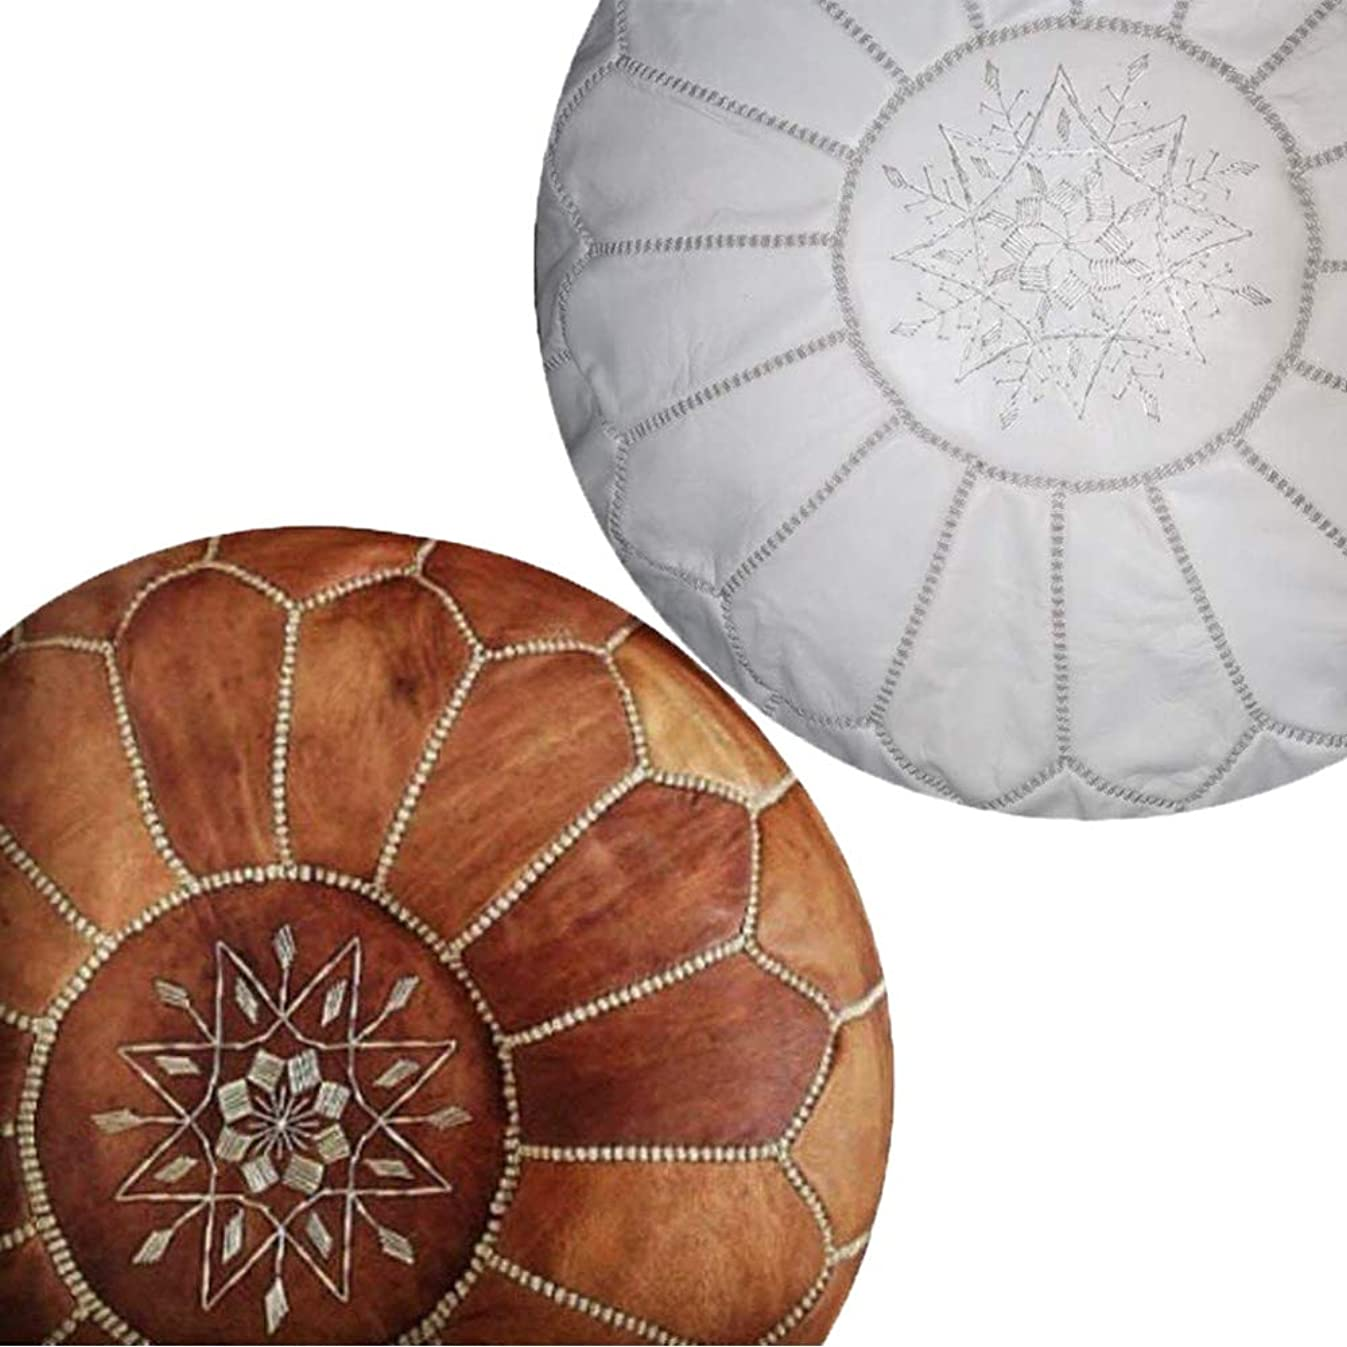 Set of 2 Amazing Moroccan pouf Tan & Wihte Leather Pouf Best offer, Ottomans,Footstool,100% handmade Ready to magic your living room! Leather